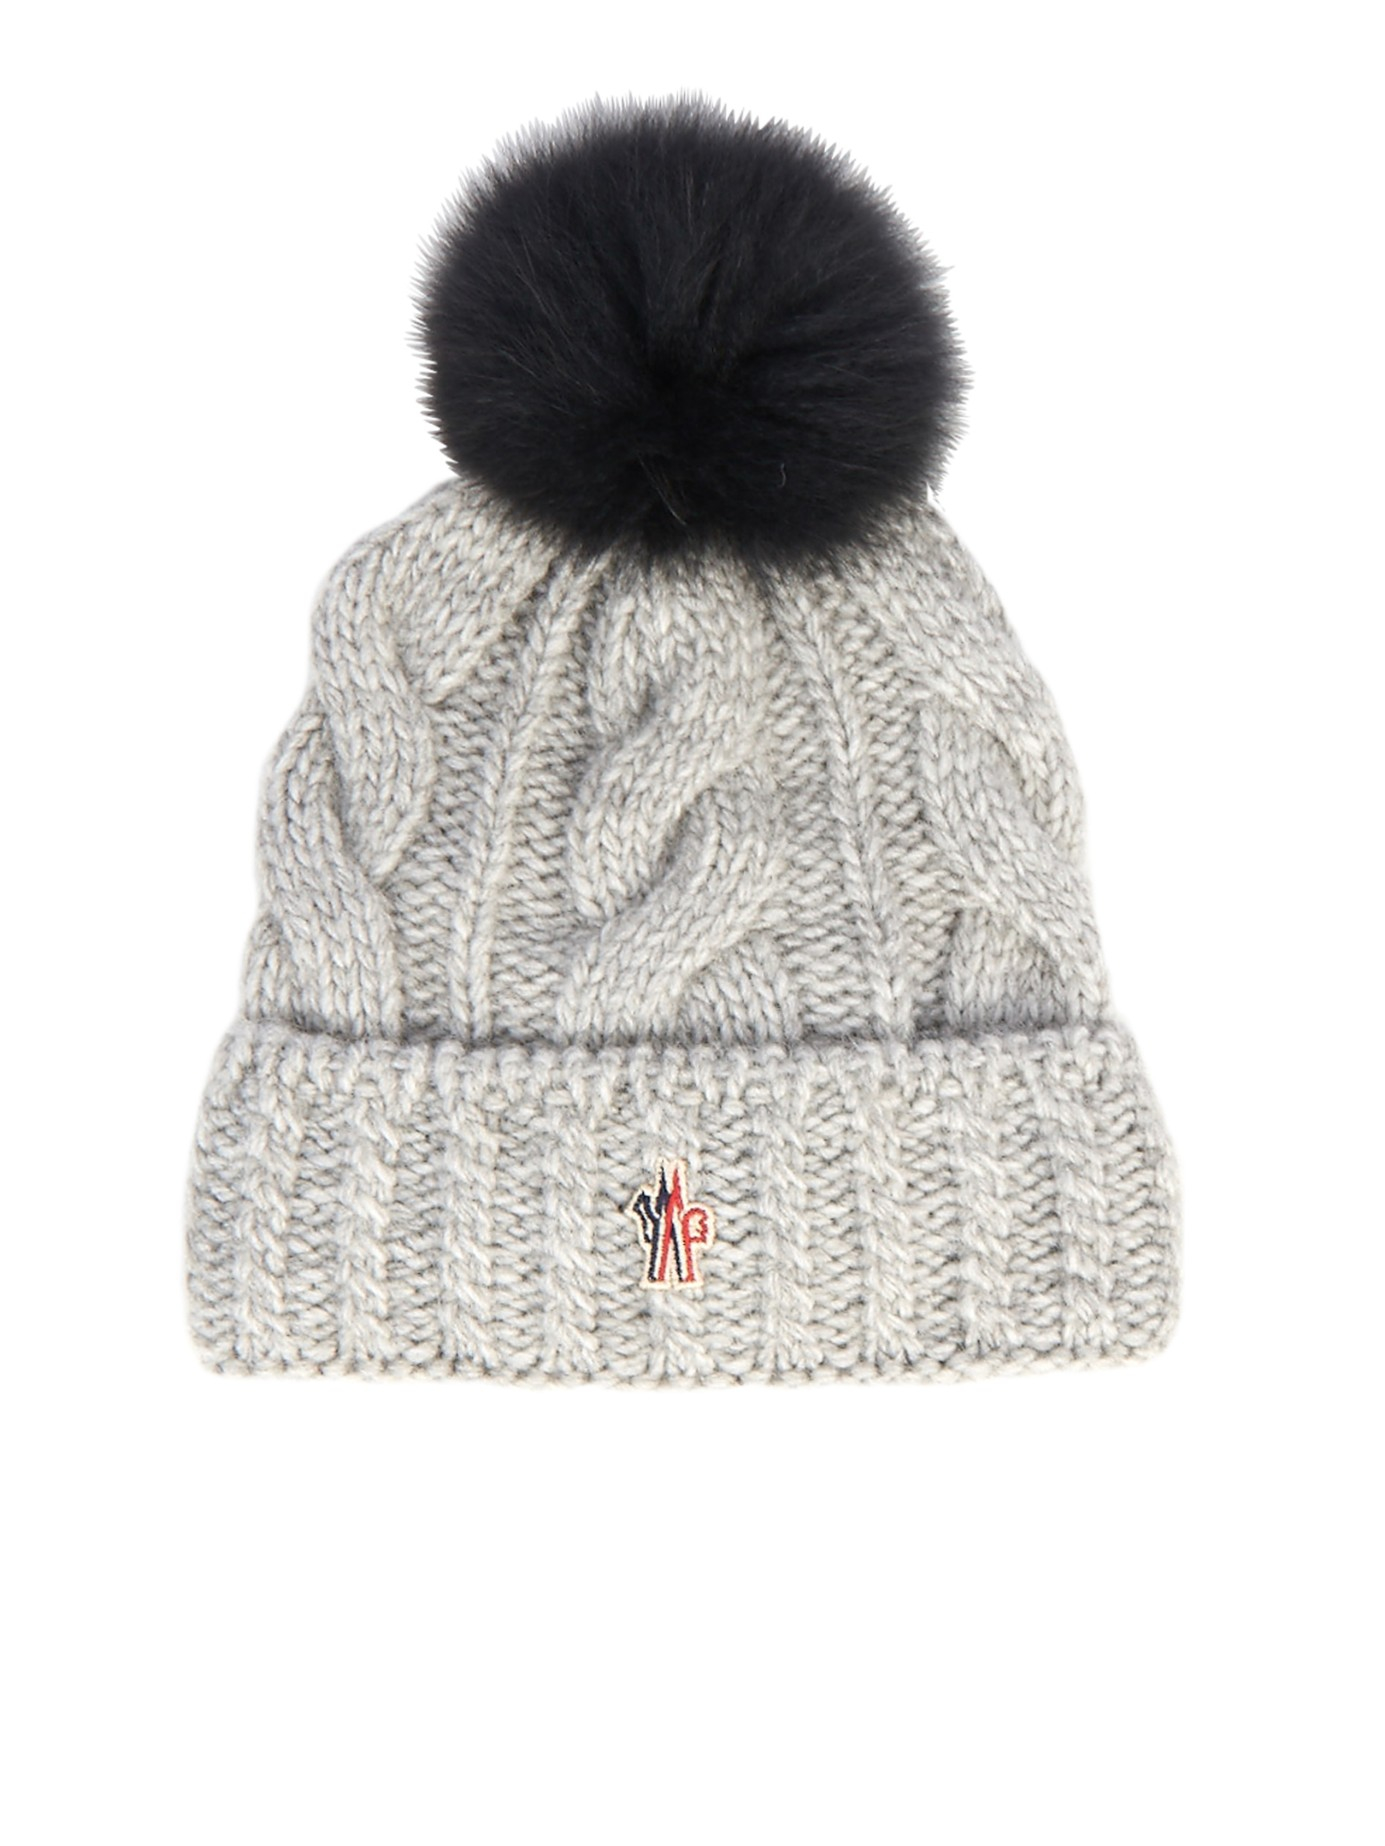 c136d1d486b37 Moncler Grenoble Cable Knit Pompom Beanie in Gray - Lyst